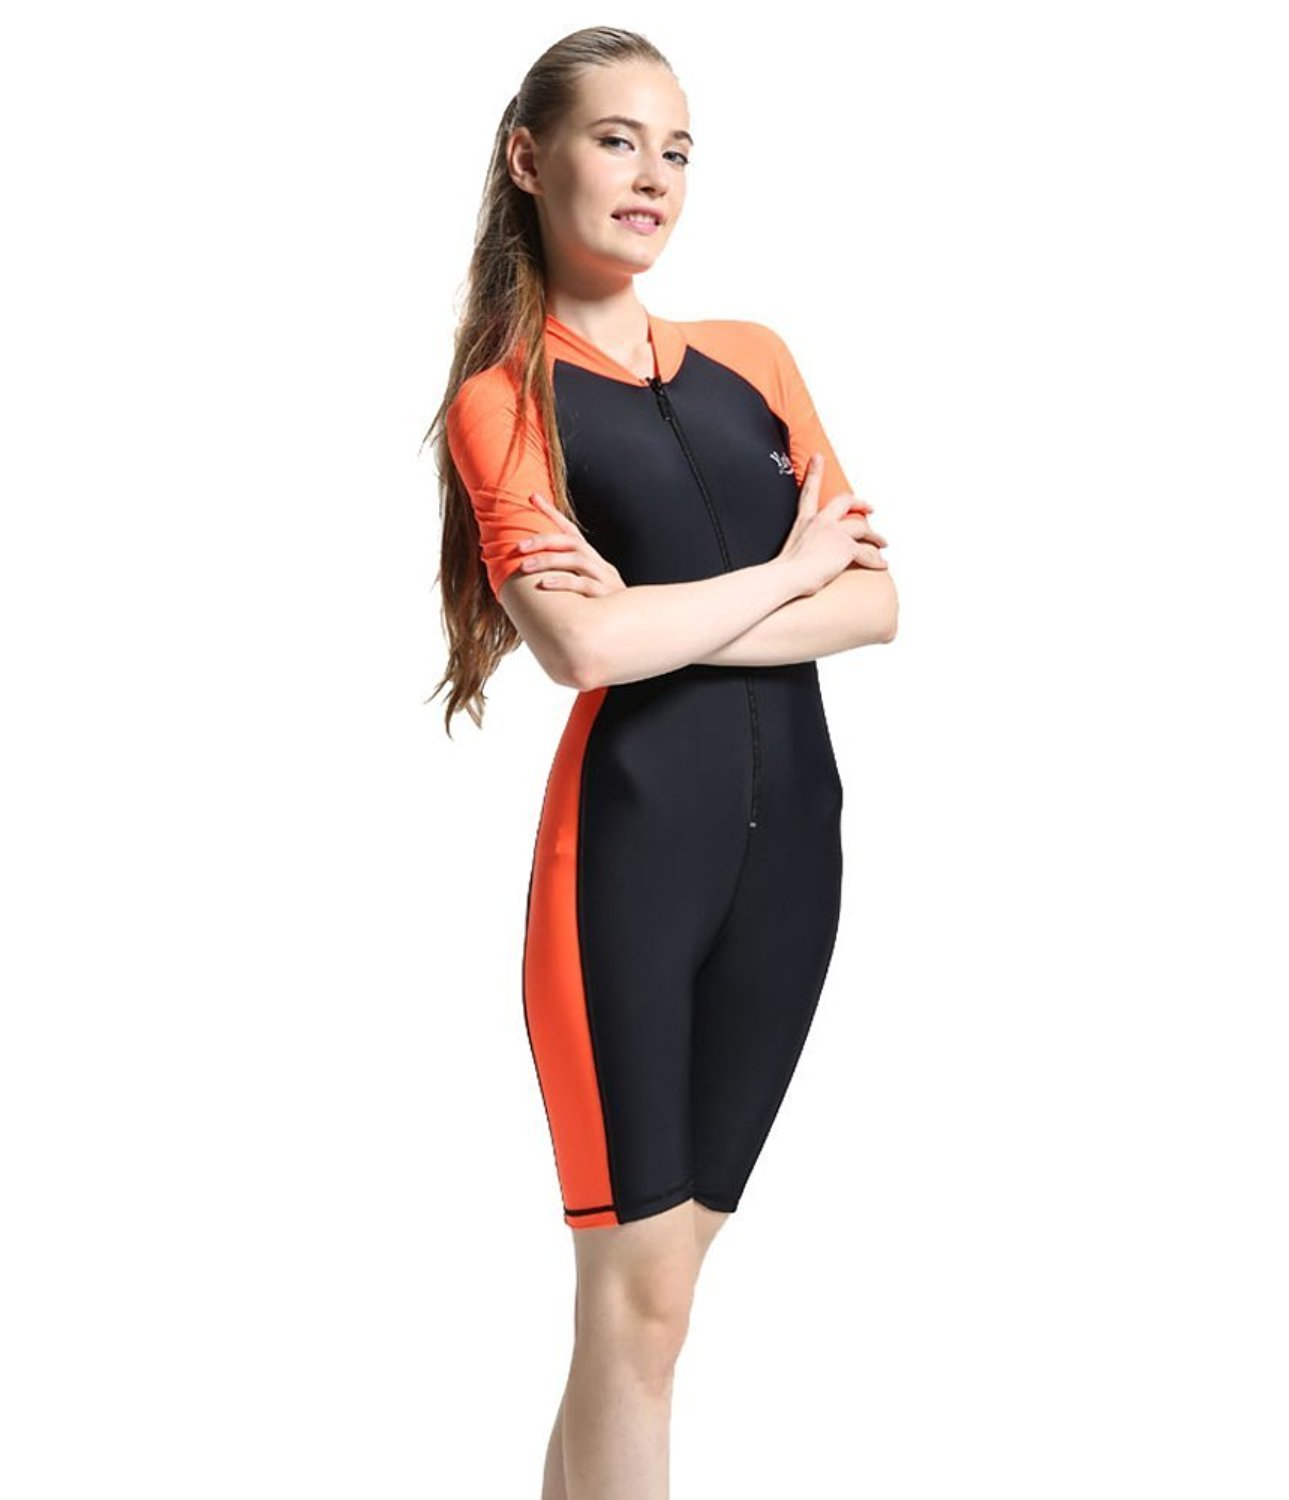 a8e40c4a5eca8 Crystal Hays One-piece Snorkeling Surfing Swim Suit Short Sleeves Plus Size  Swimwear- Sun